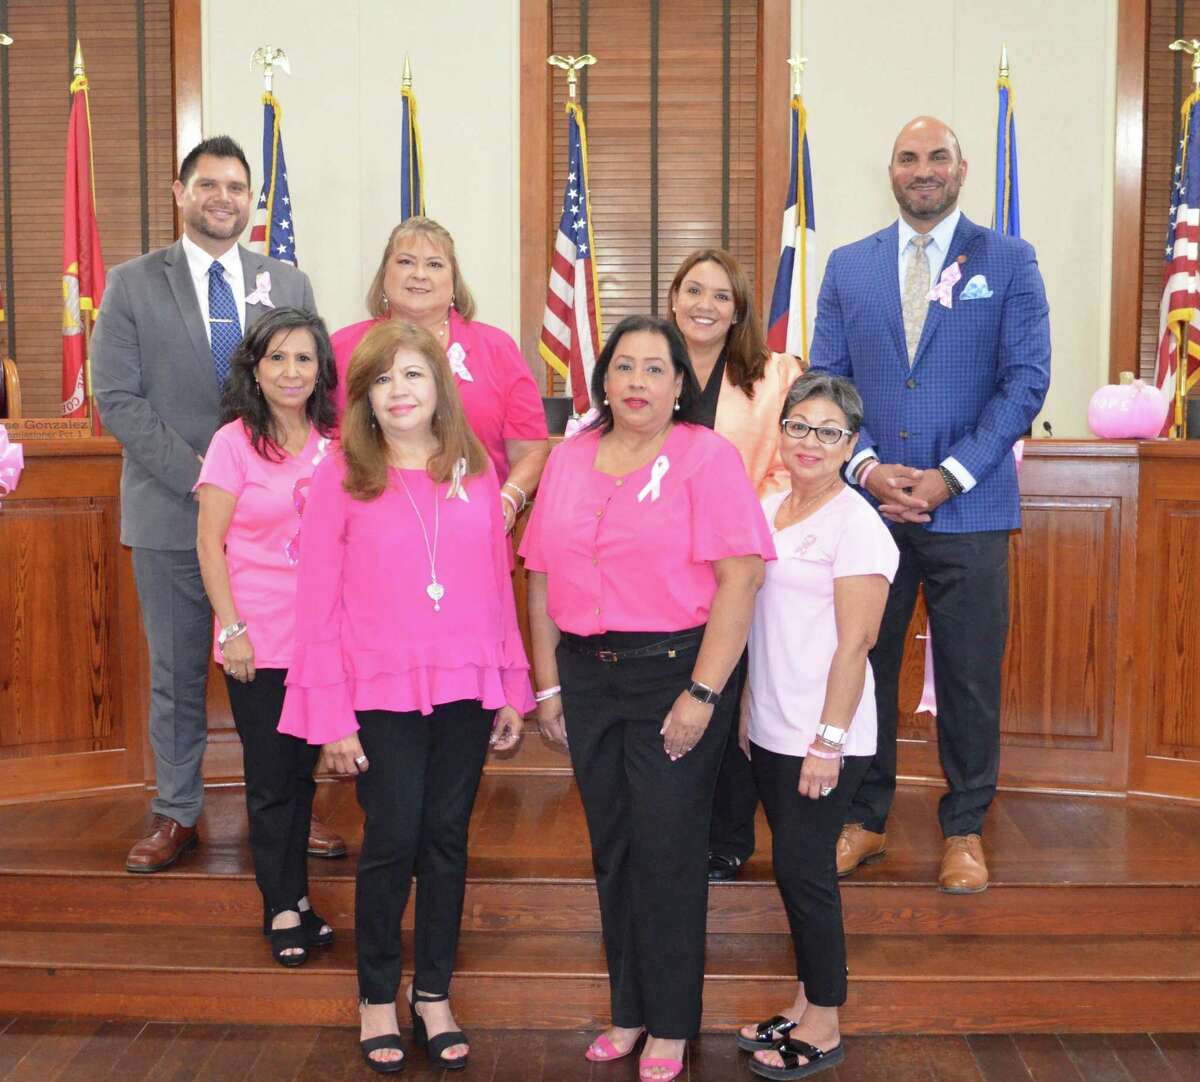 The Webb County Commissioners Court declared Oct. 15 at National Mammography Day at Wednesday's meeting and also declared October as Breast Cancer Awareness Month.